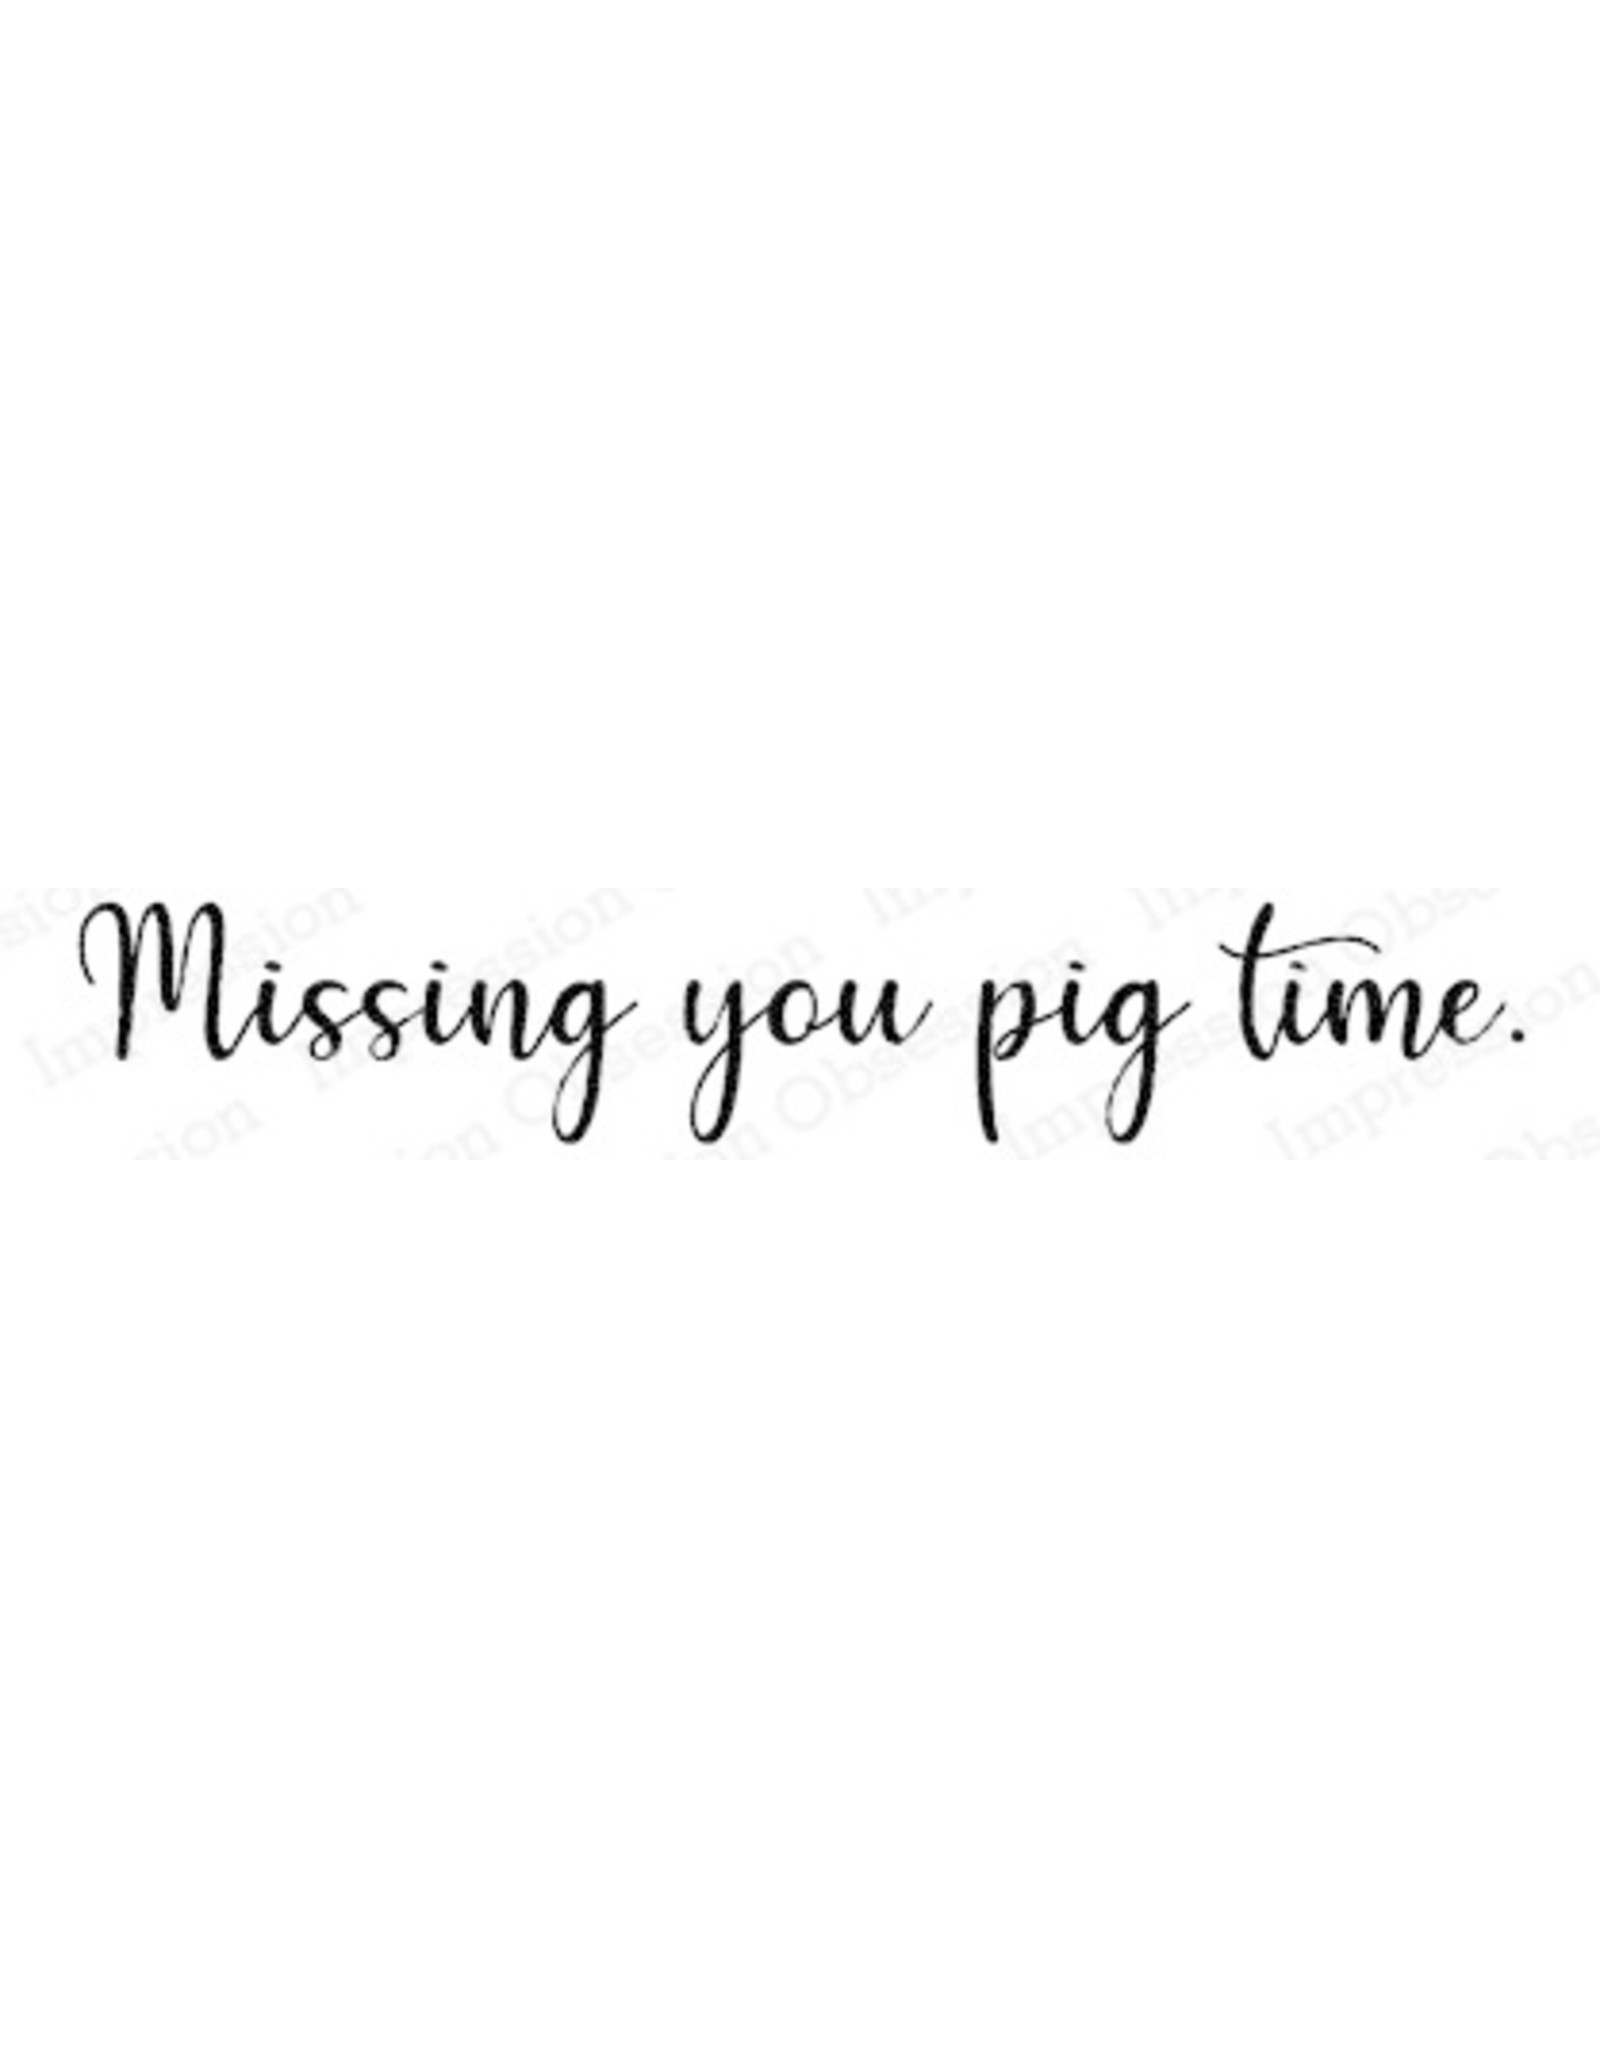 Impression Obsession Missing You Pig Time - Cling Stamp